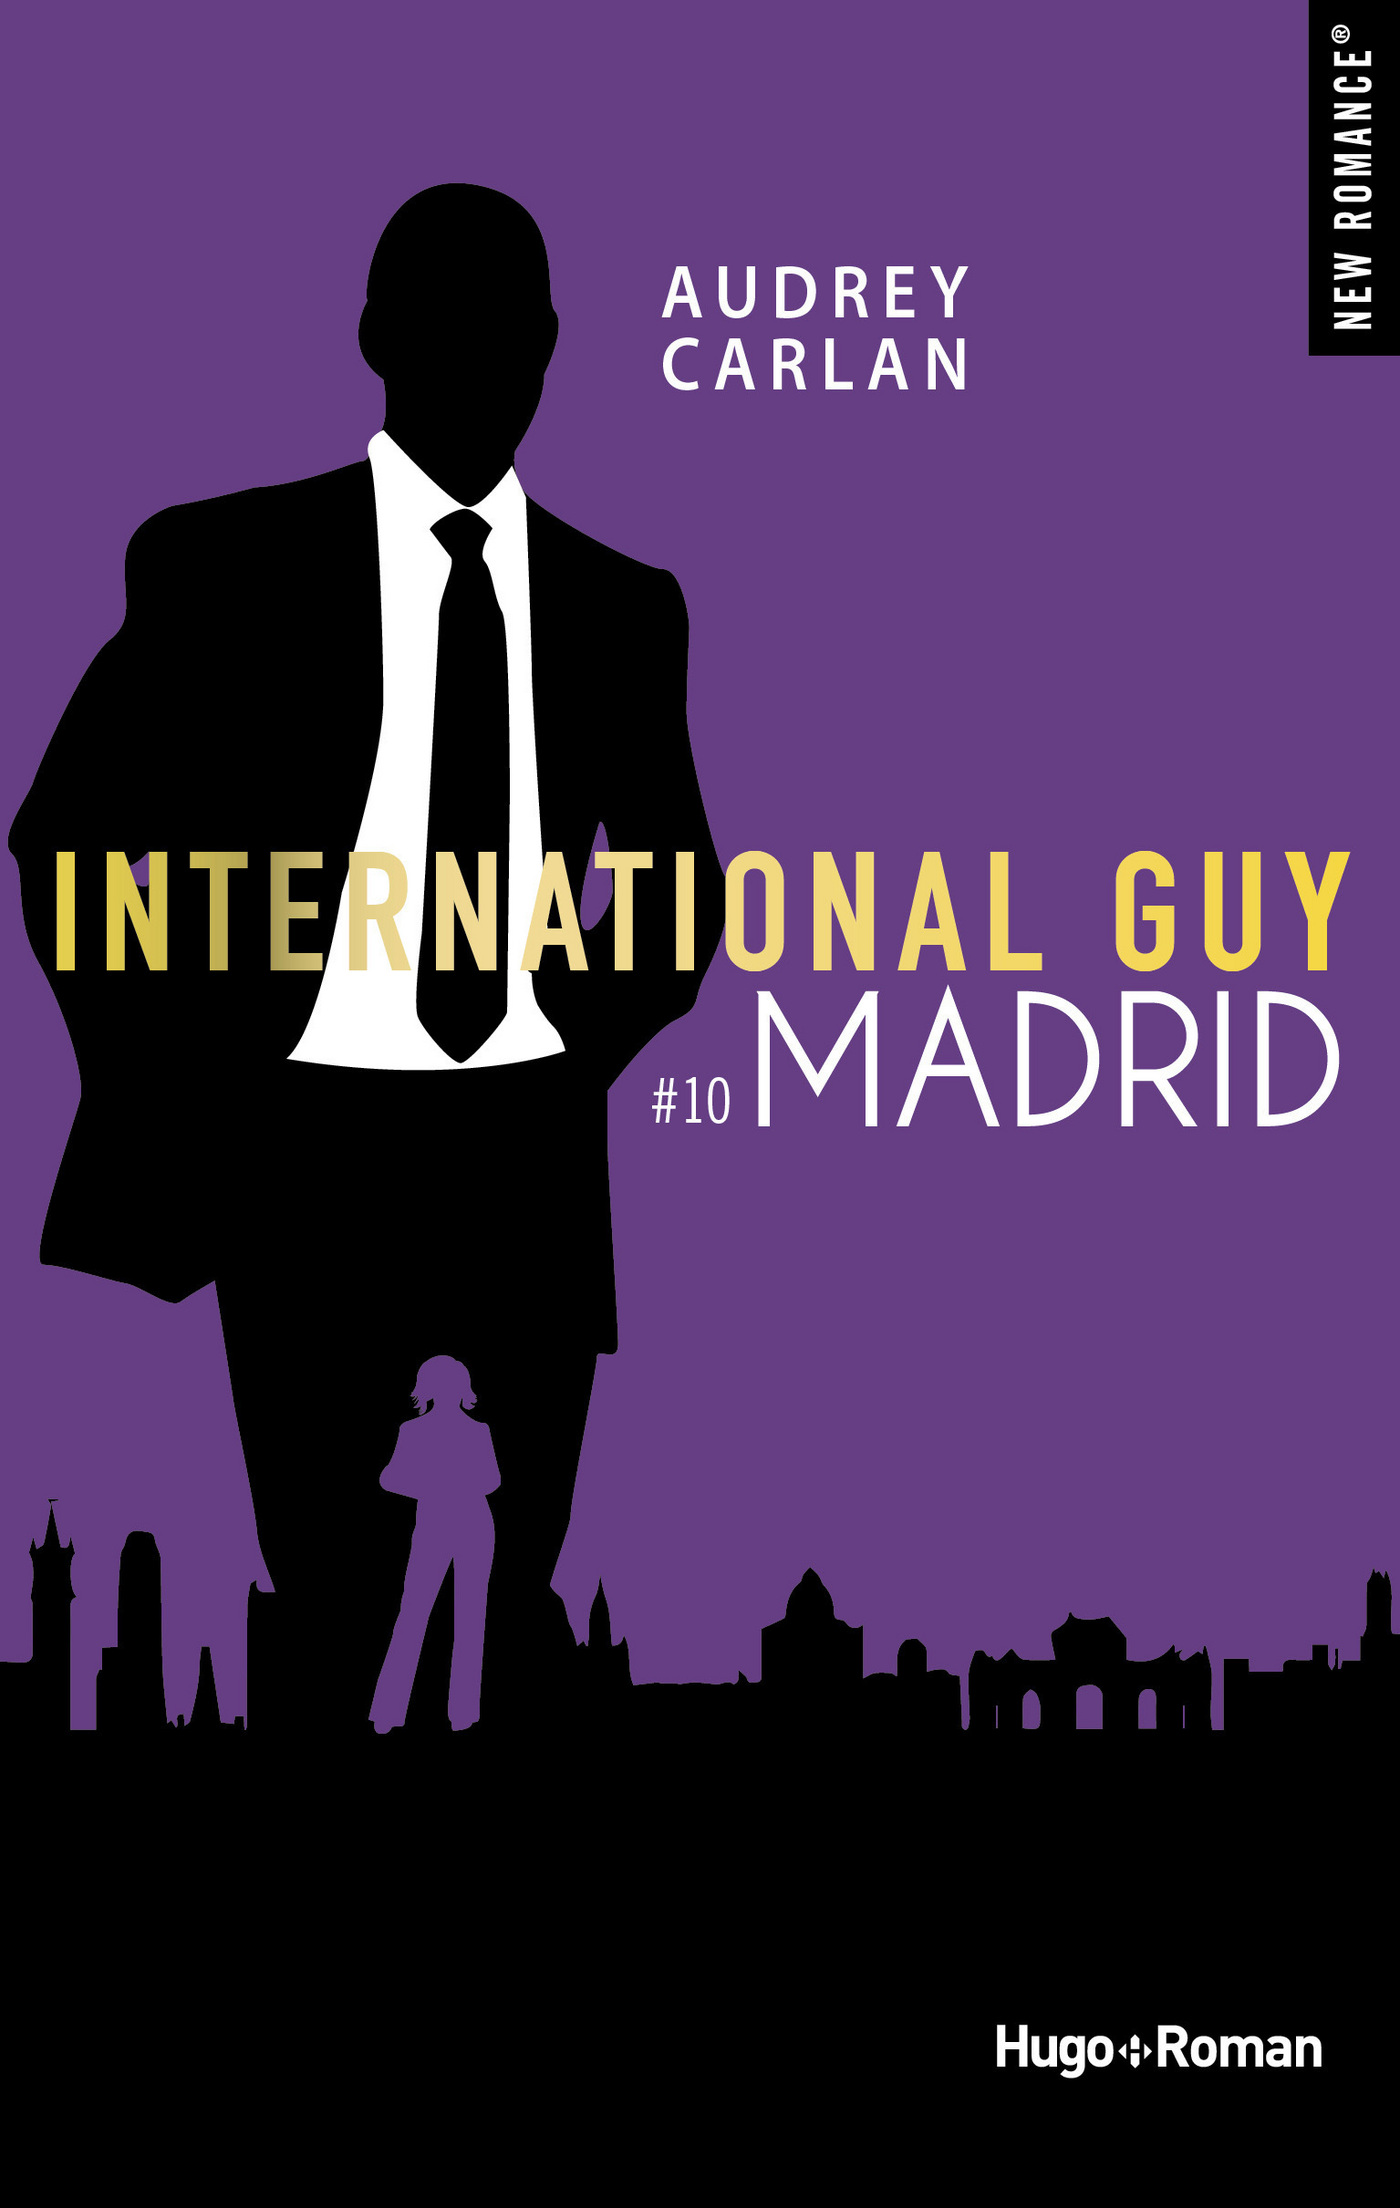 International guy - tome 10 Madrid -Extrait offert-